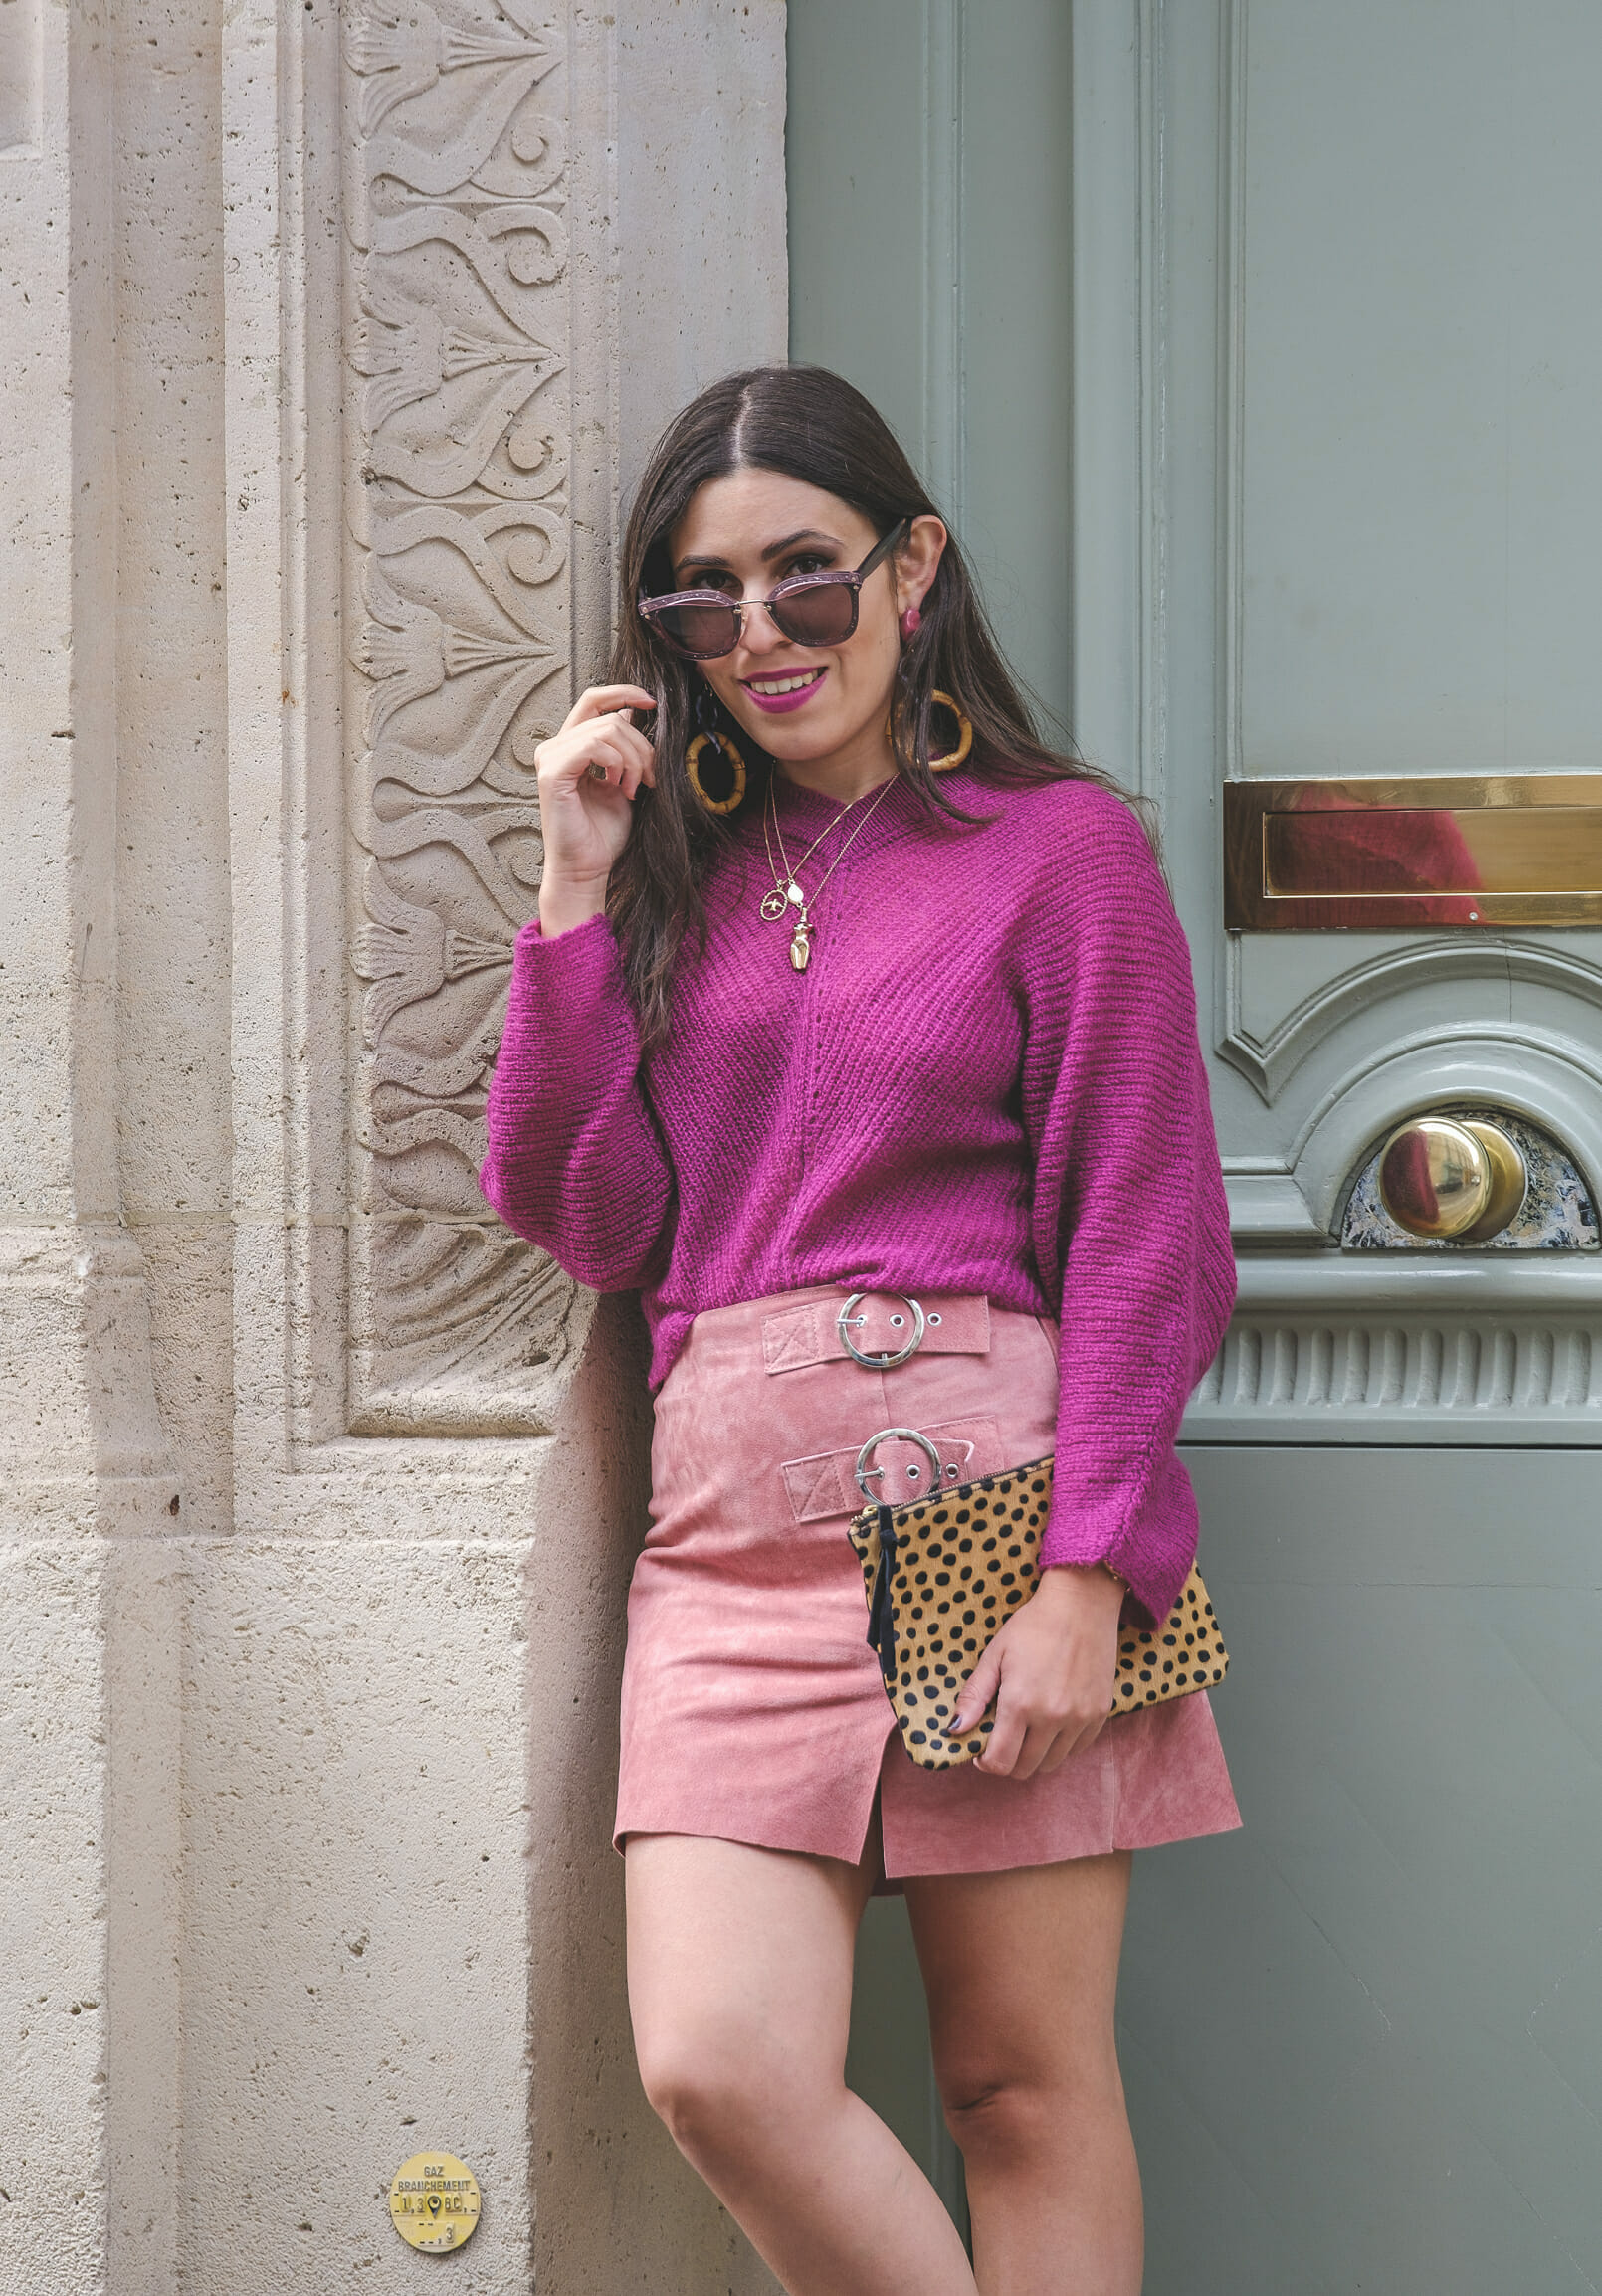 Le Fashionaire purple mohair mango knit bold long zara bamboo pink earrings leopard leather sfera clutch gold swallow cinco store necklace 9086 EN purple mohair mango knit bold long zara bamboo pink earrings leopard leather sfera clutch gold swallow cinco store necklace 9086 EN